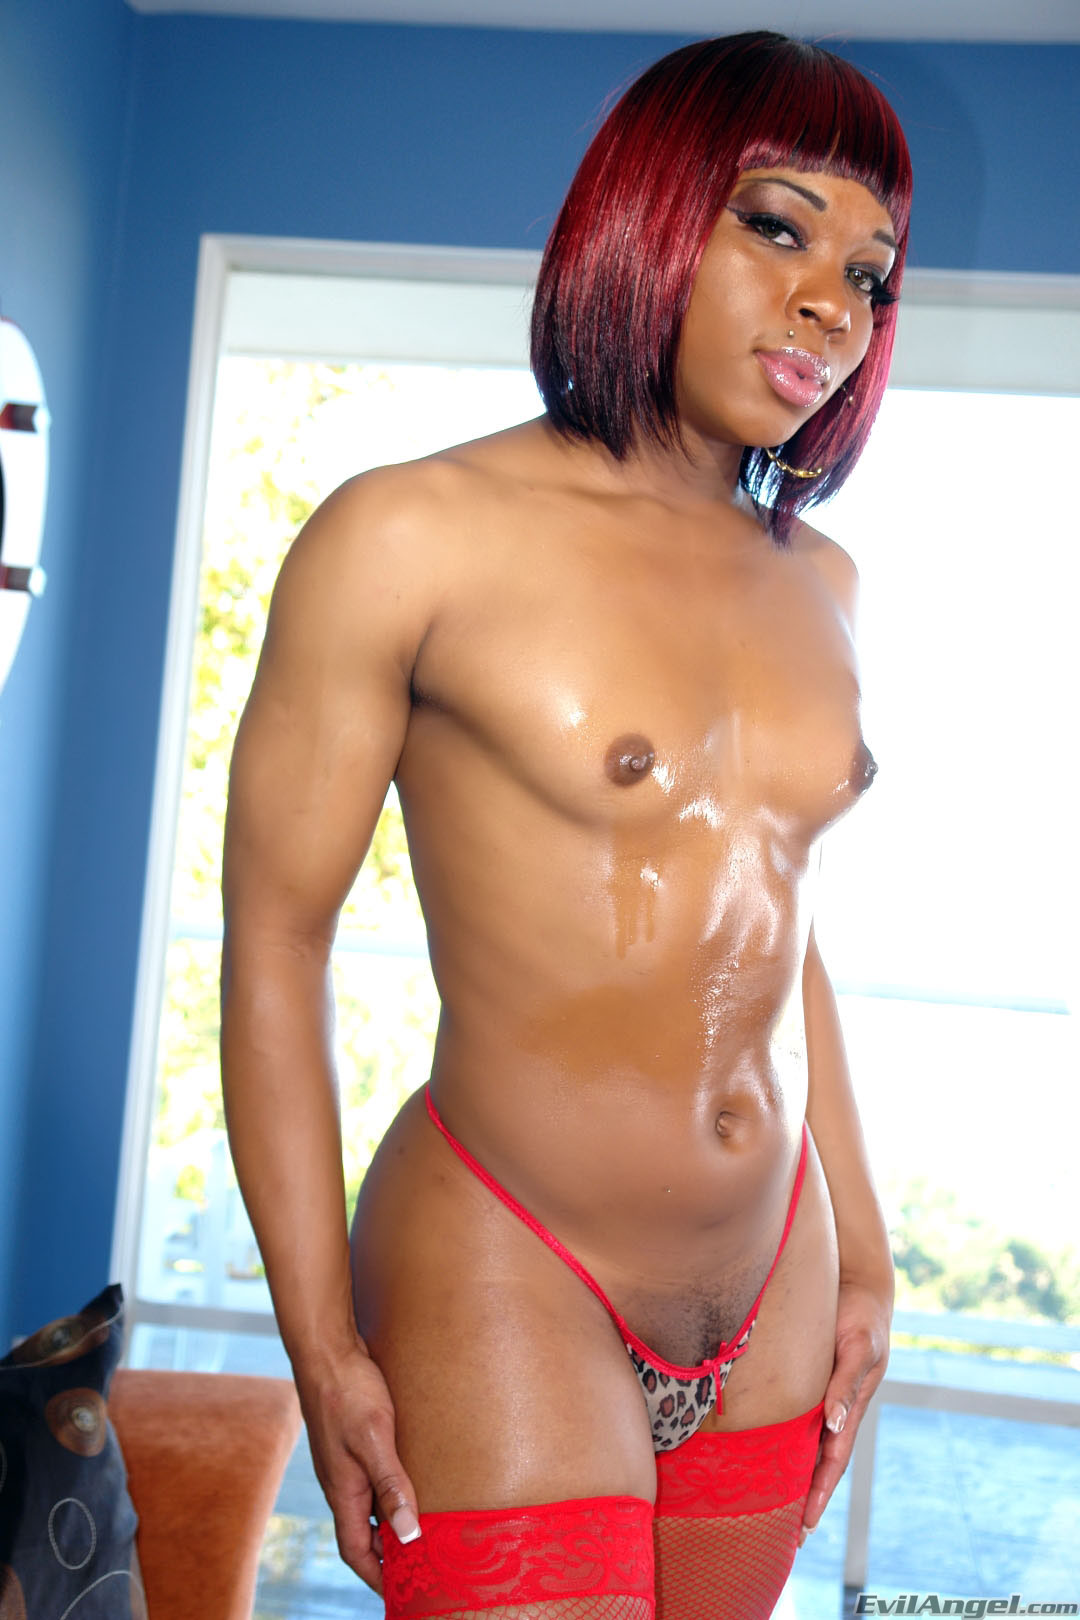 muscular tranny in stockings shows big cock - photo 4 - ashemaletube